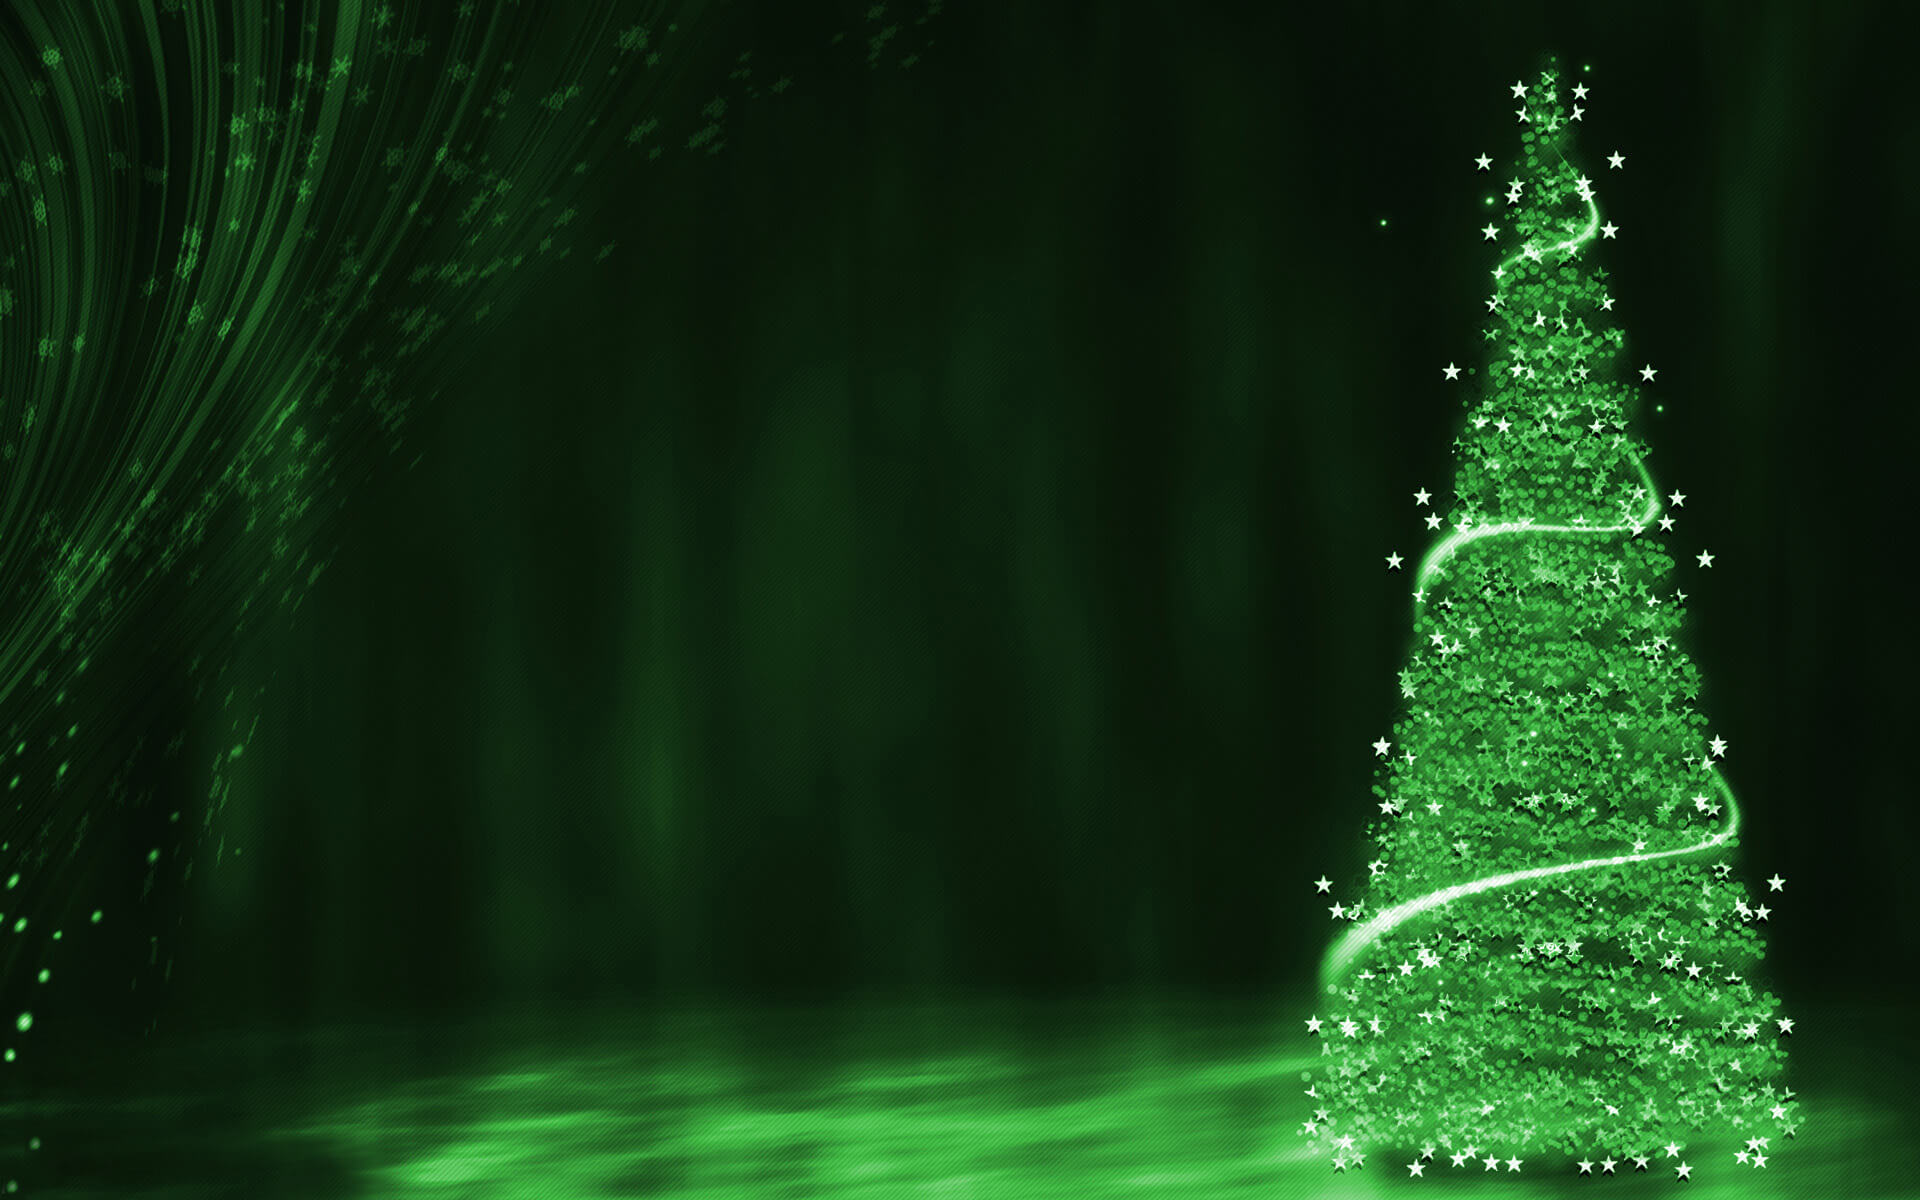 happy merry christmas eve wishes green tree stars hd wallpaper